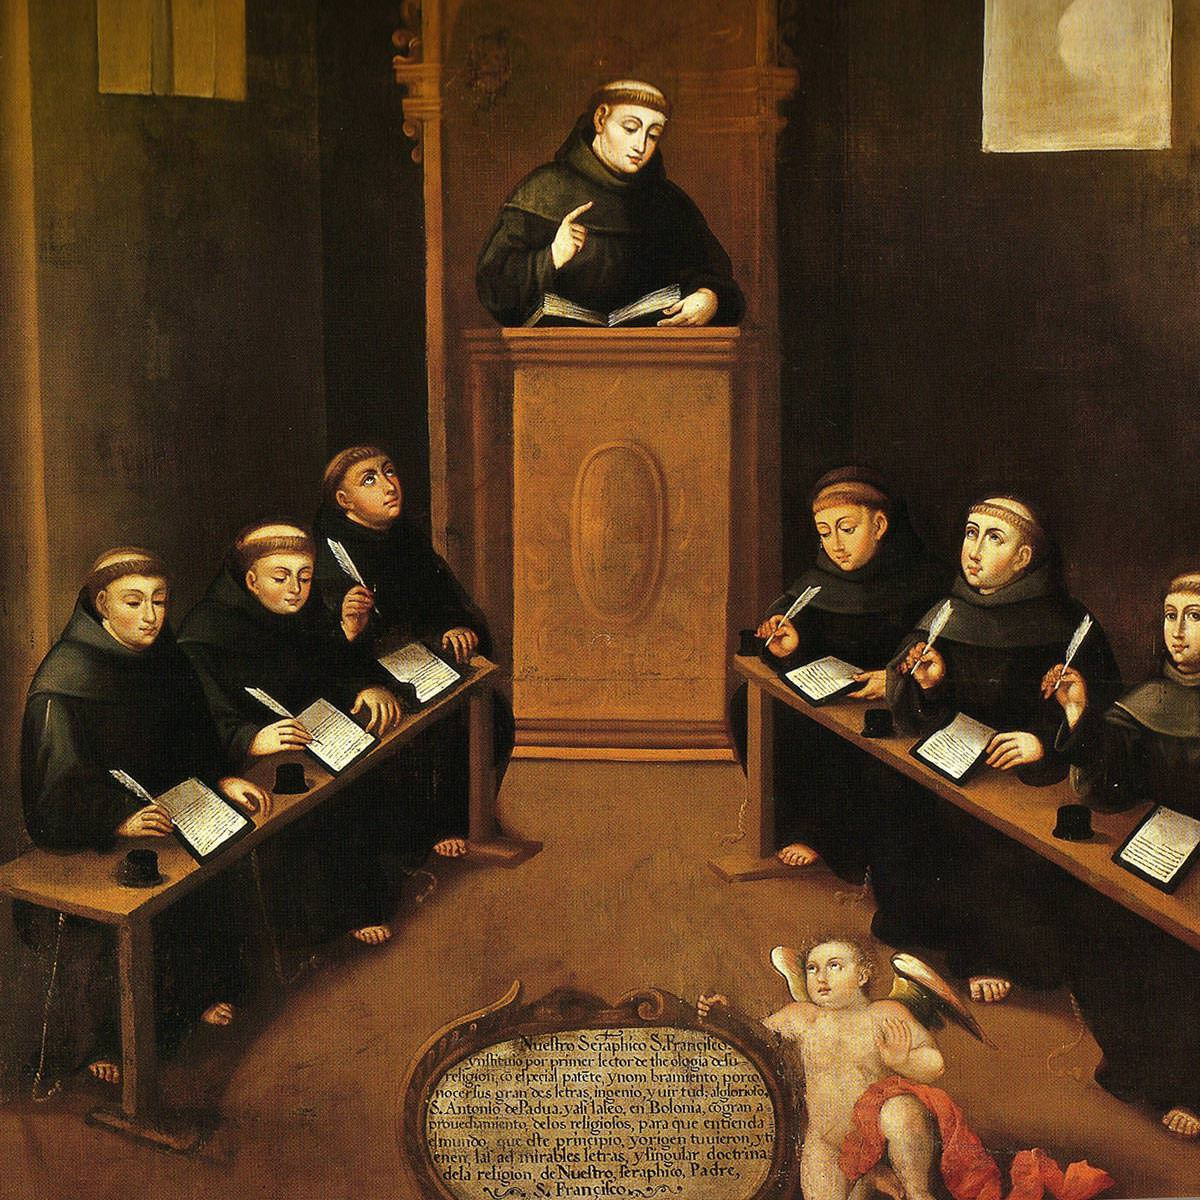 Franciscan formation and studies